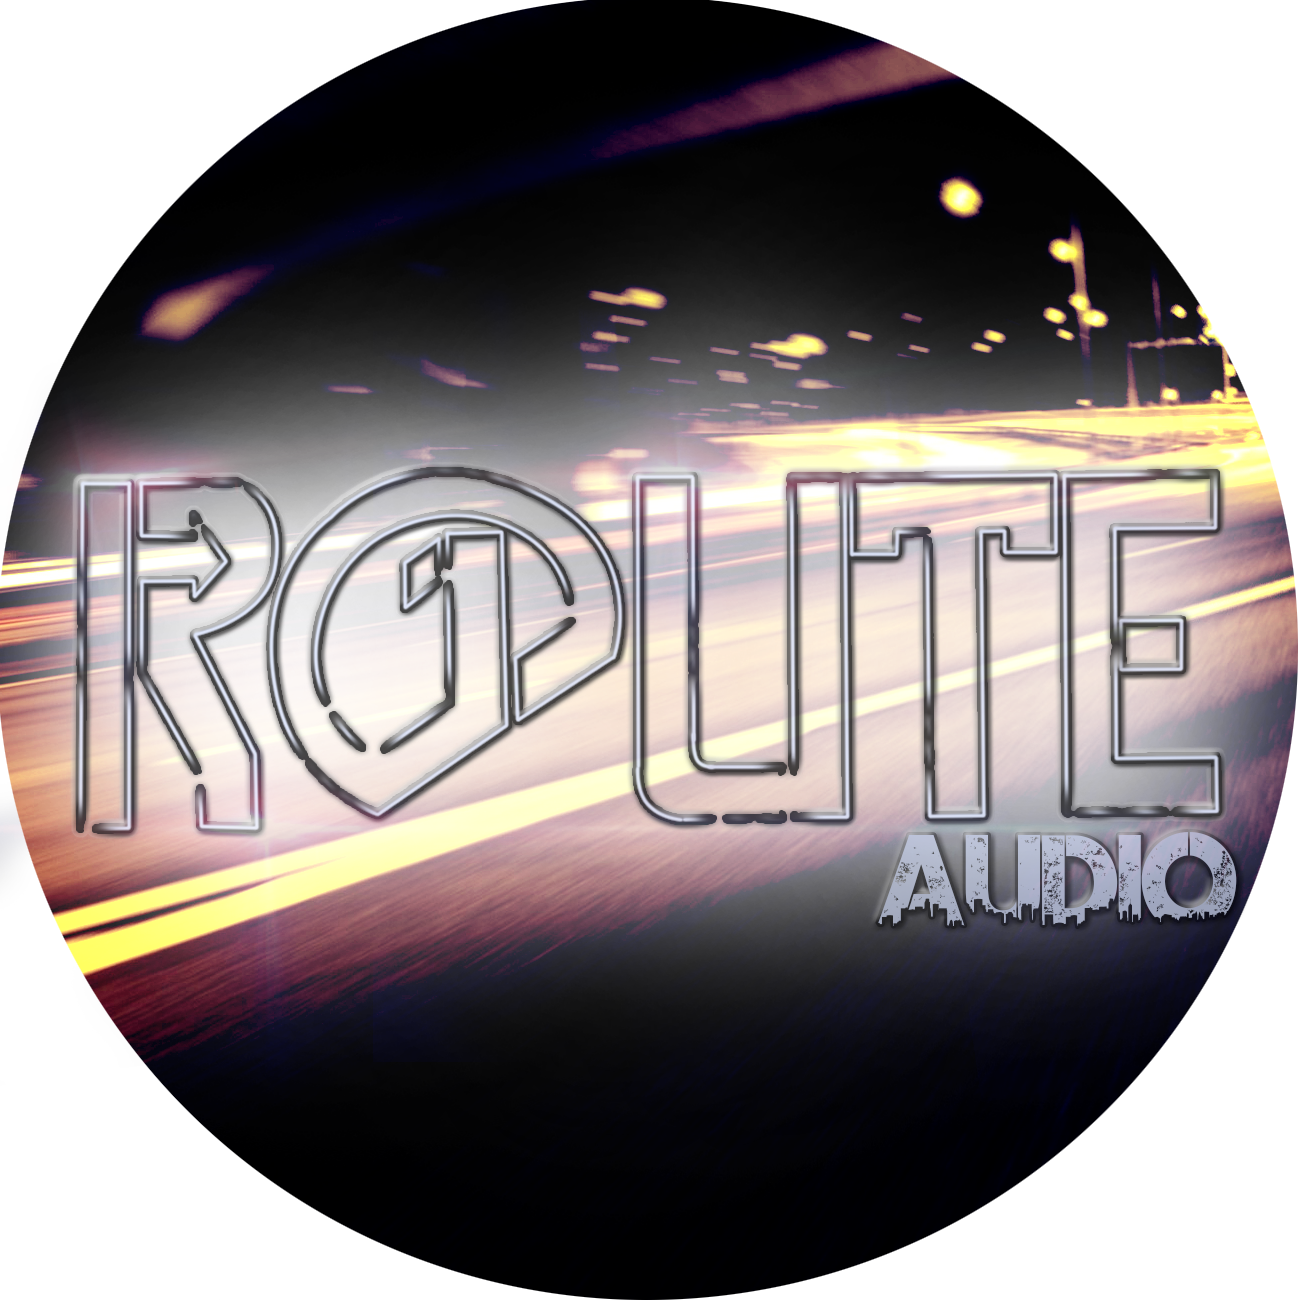 Route 1 Audio